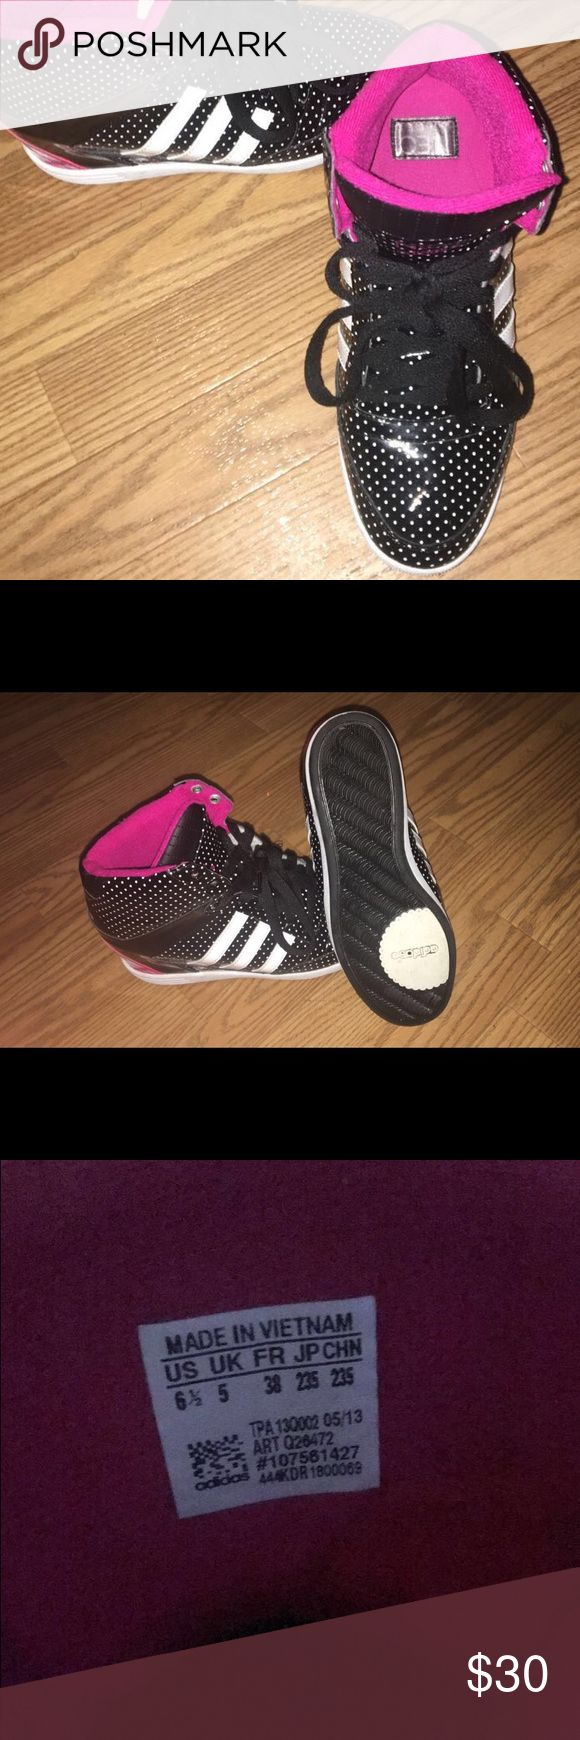 Adidas Pump Sneakers Adidas black pumps with white polka dots and pink lining. Size 6/12 Adidas Shoes Sneakers